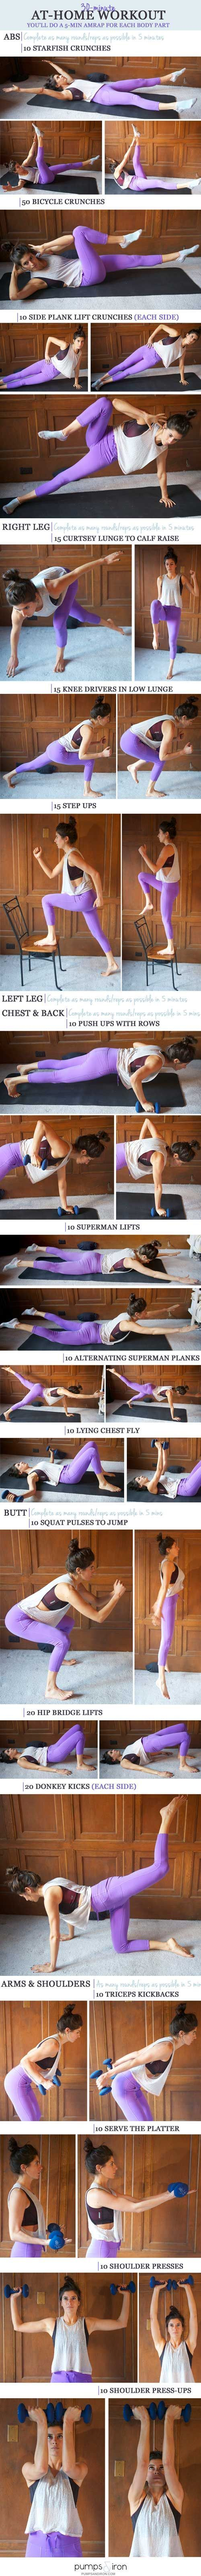 Try these exercises at home! #fitness